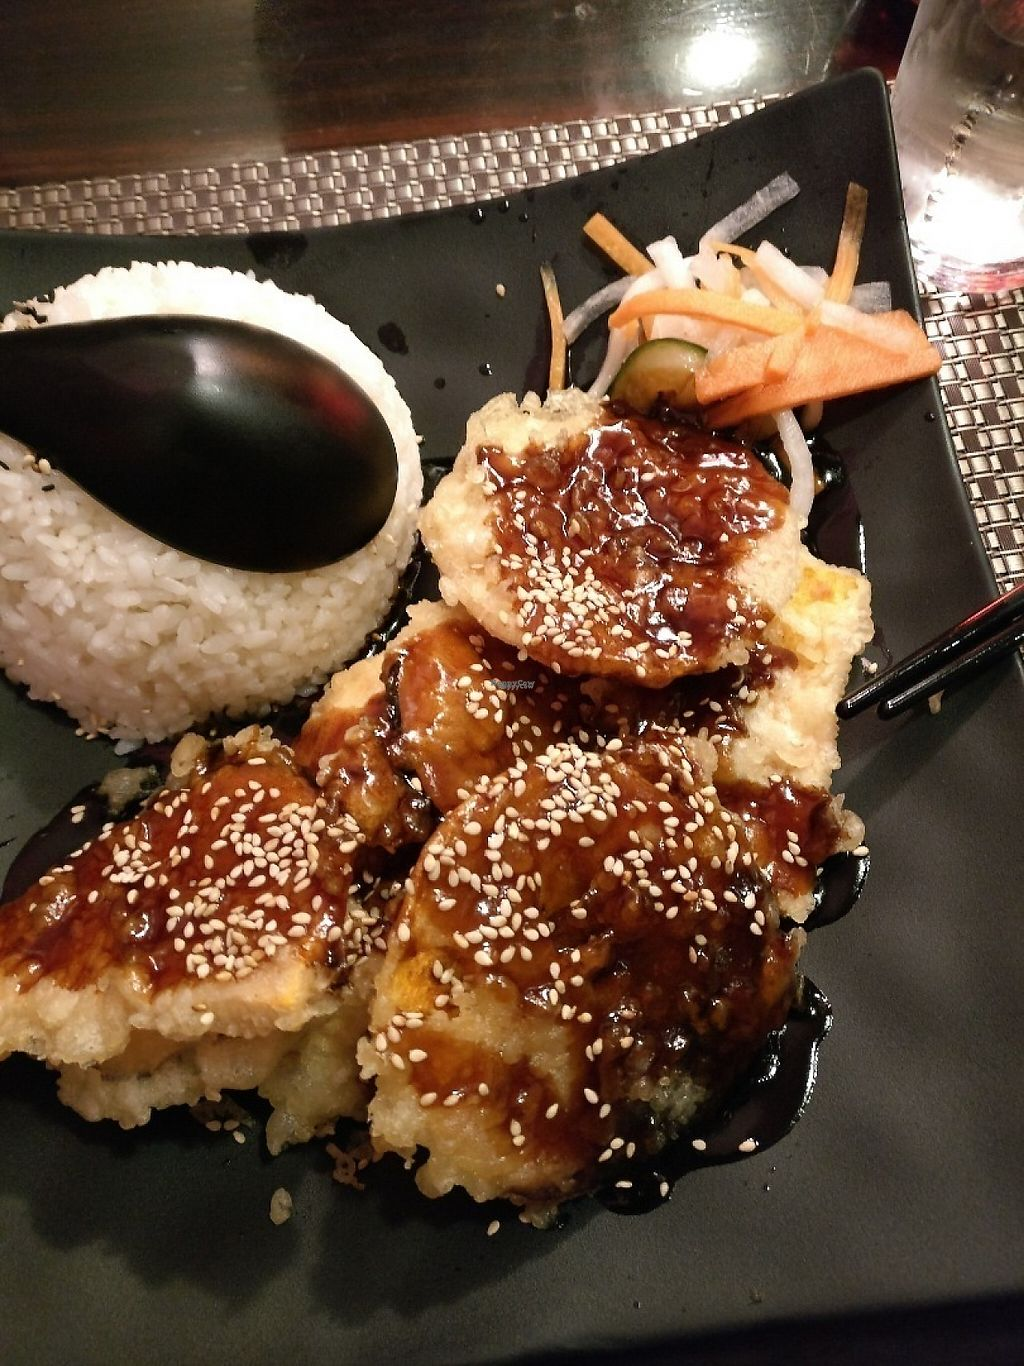 """Photo of Nippon Kitchen  by <a href=""""/members/profile/Agadooska"""">Agadooska</a> <br/>Veg tempura in teriyaki sauce, rice and sweet pickle; greasy but tasty :-) <br/> November 24, 2016  - <a href='/contact/abuse/image/83103/193906'>Report</a>"""